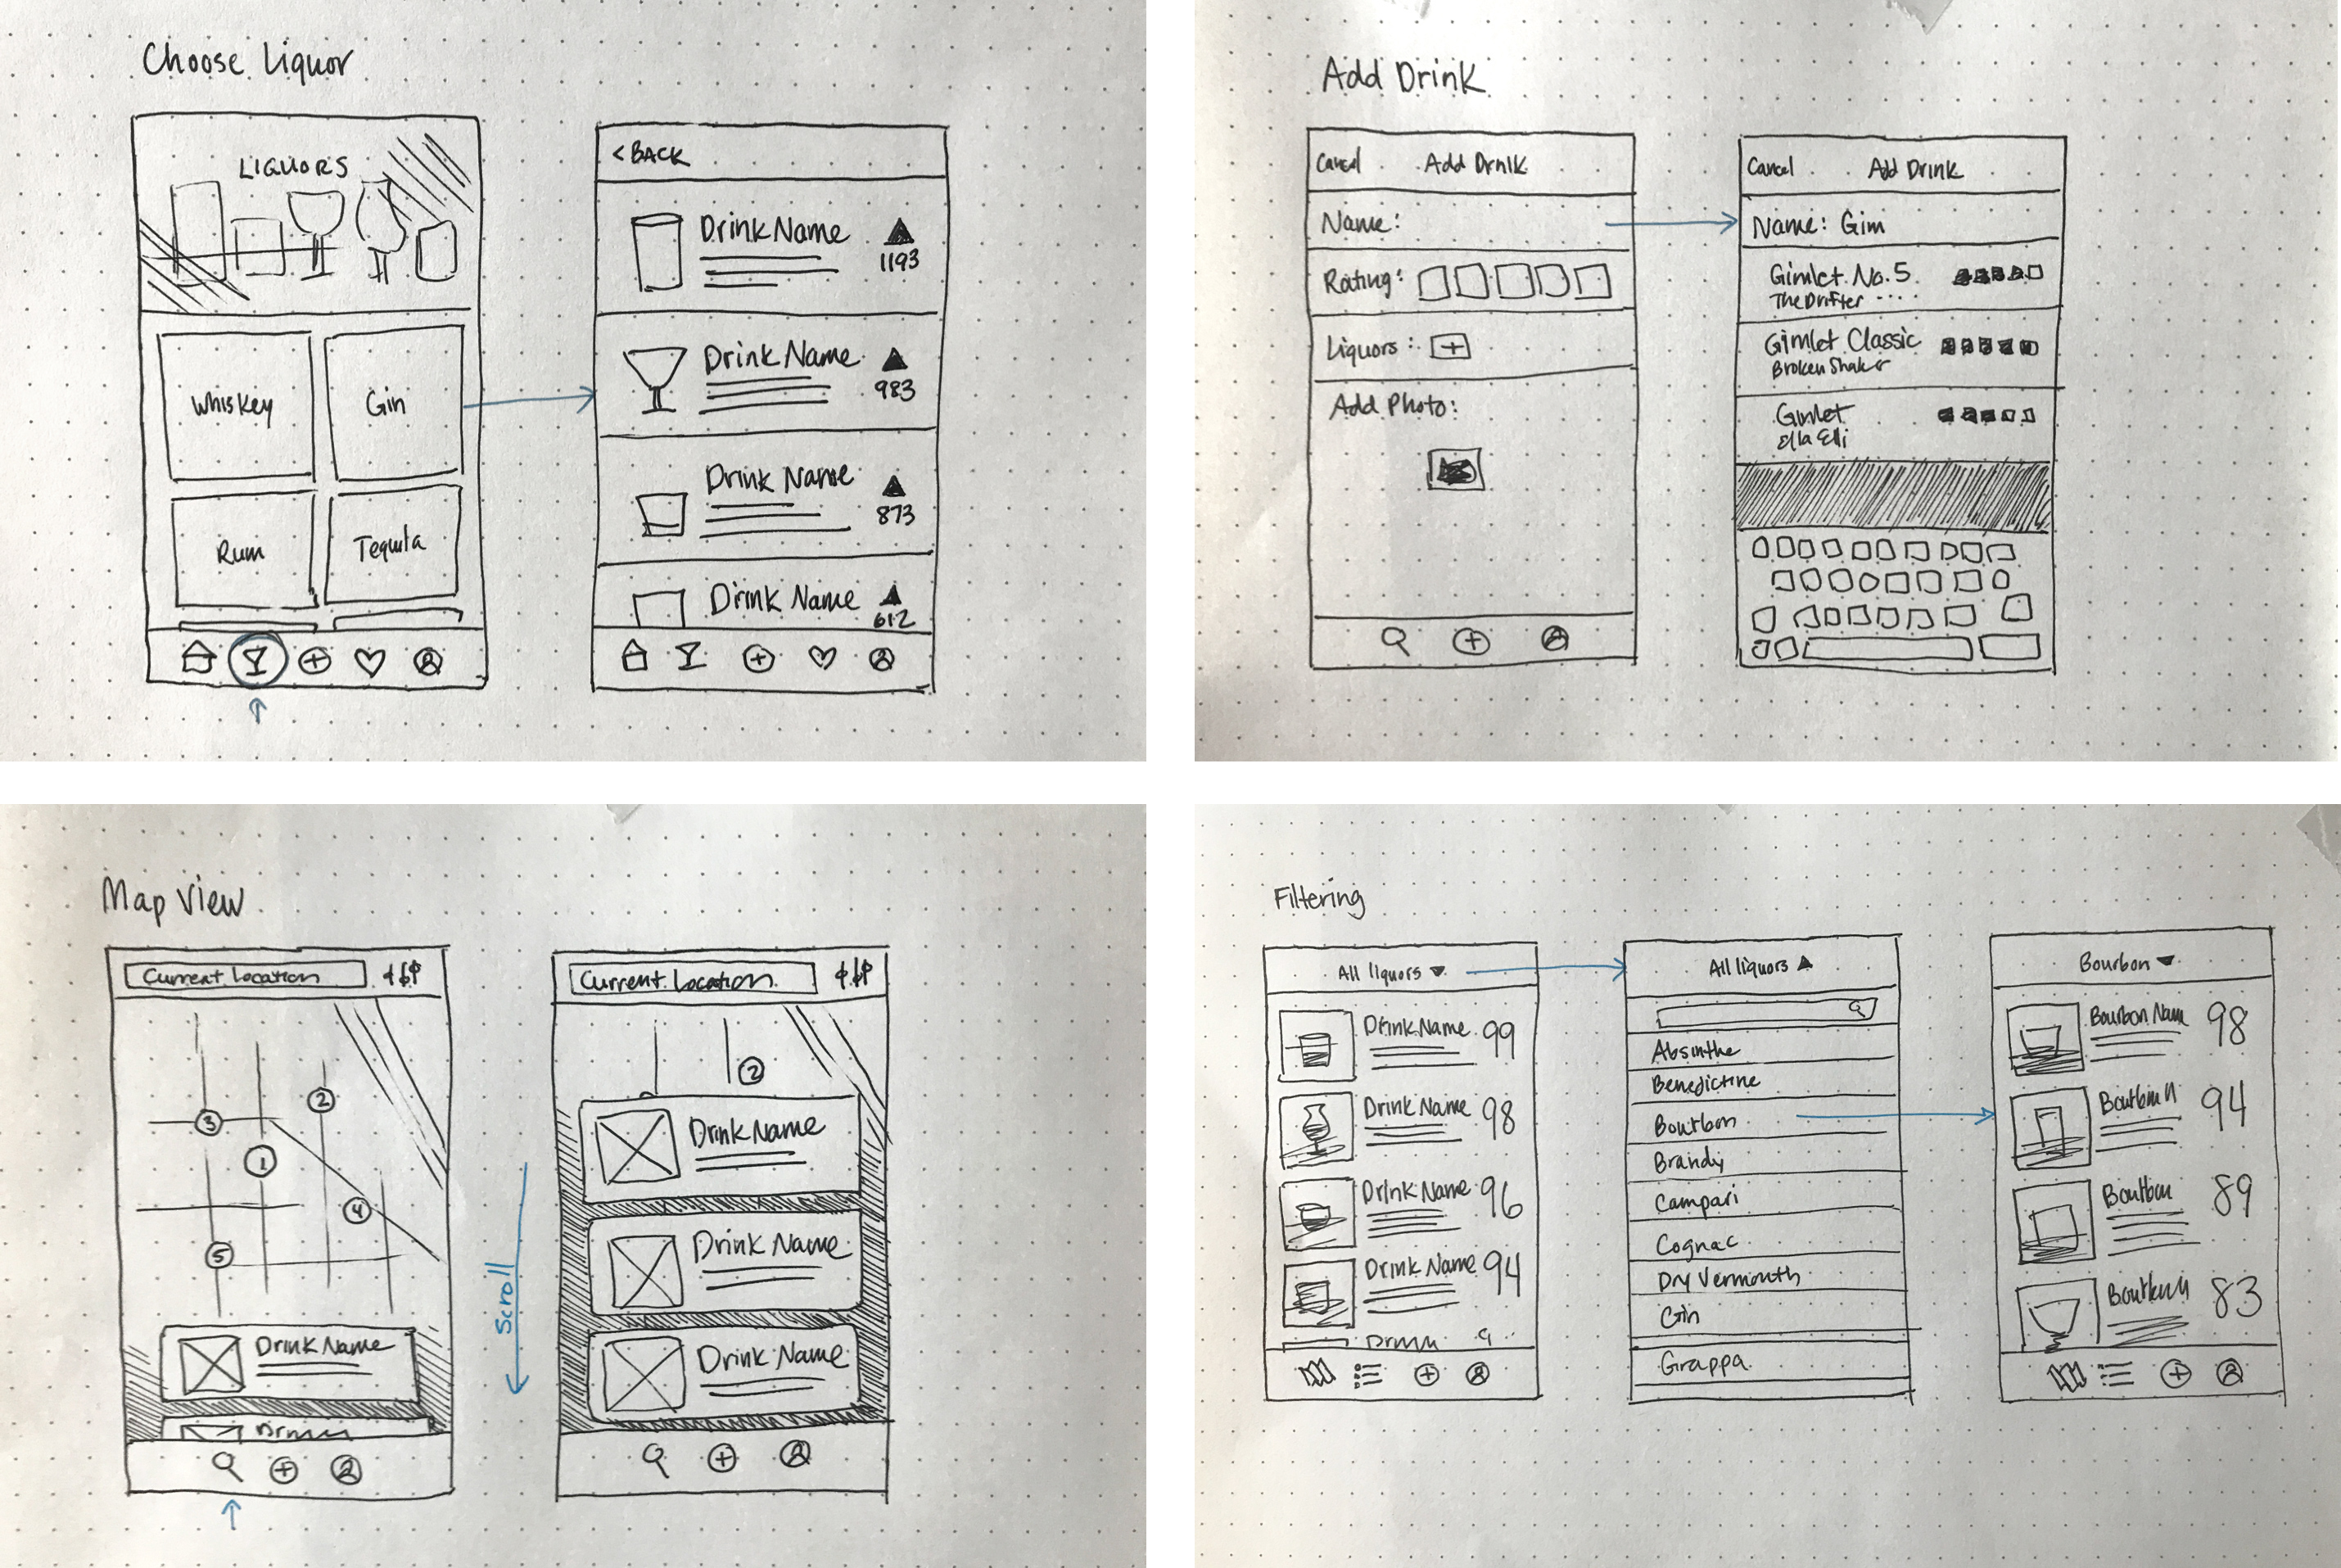 Designing a cocktail app — a UX case study - UX Collective